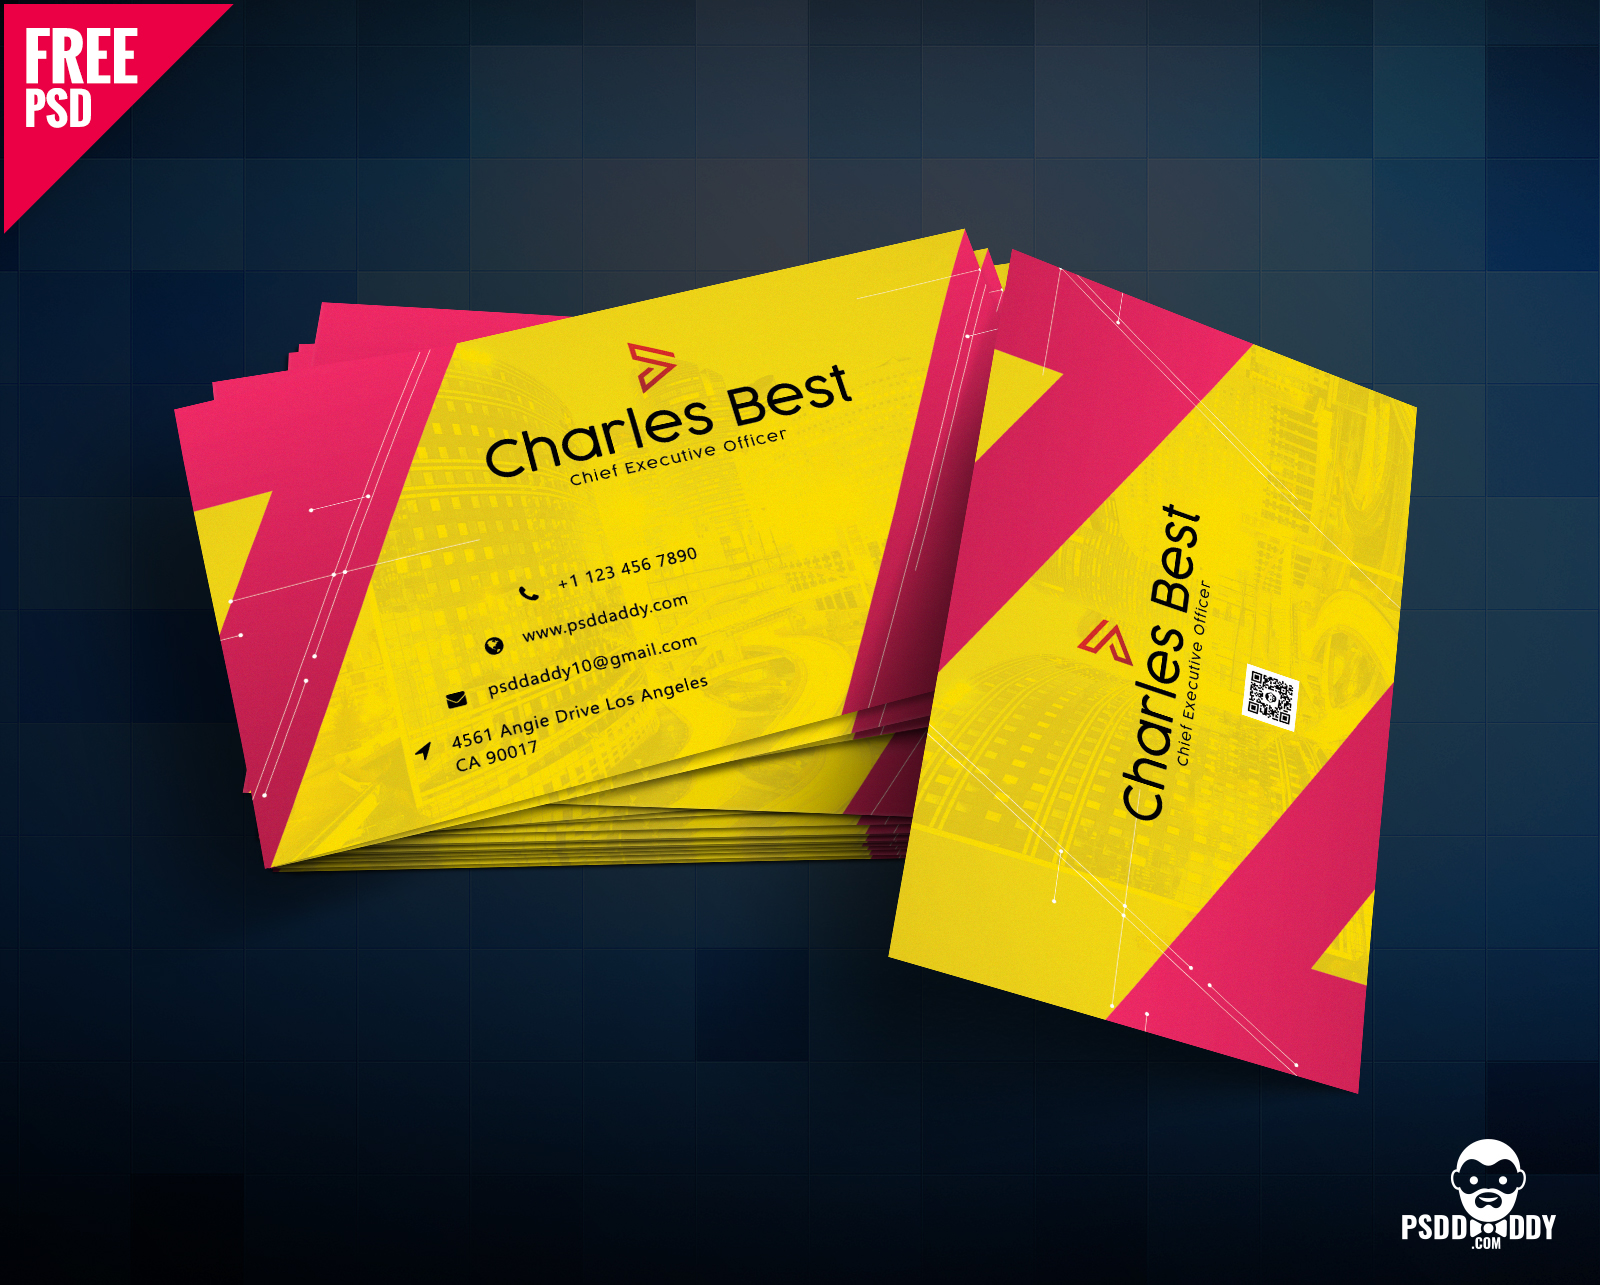 100 free business card psd templates creative business card template psd free download colourmoves